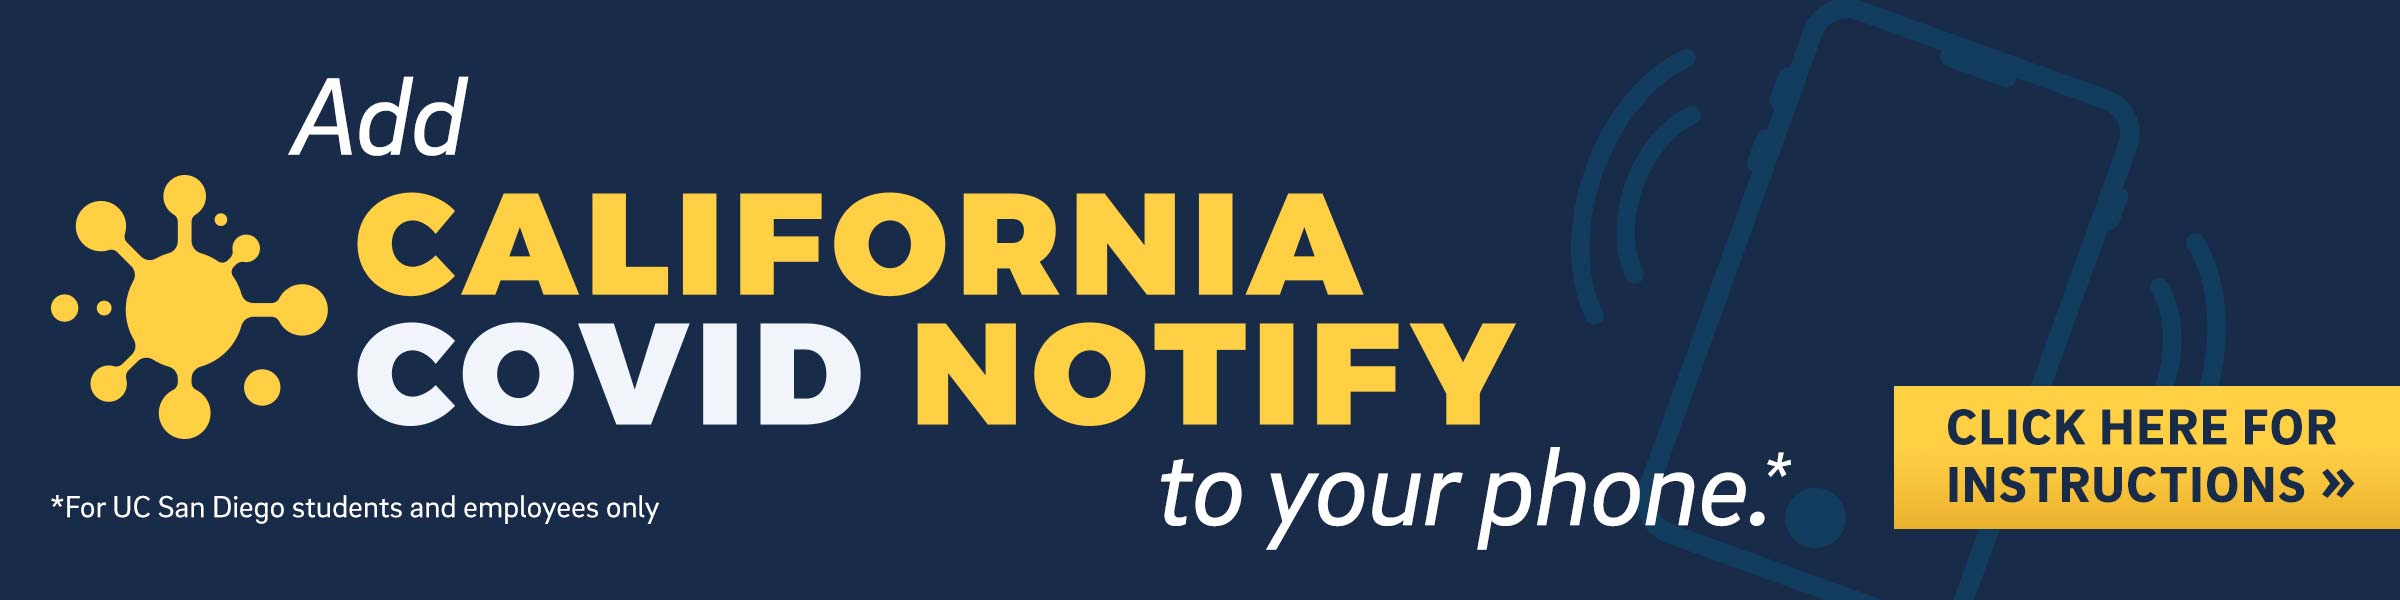 Add CALIFORNIA COVID NOTIFY to your phone